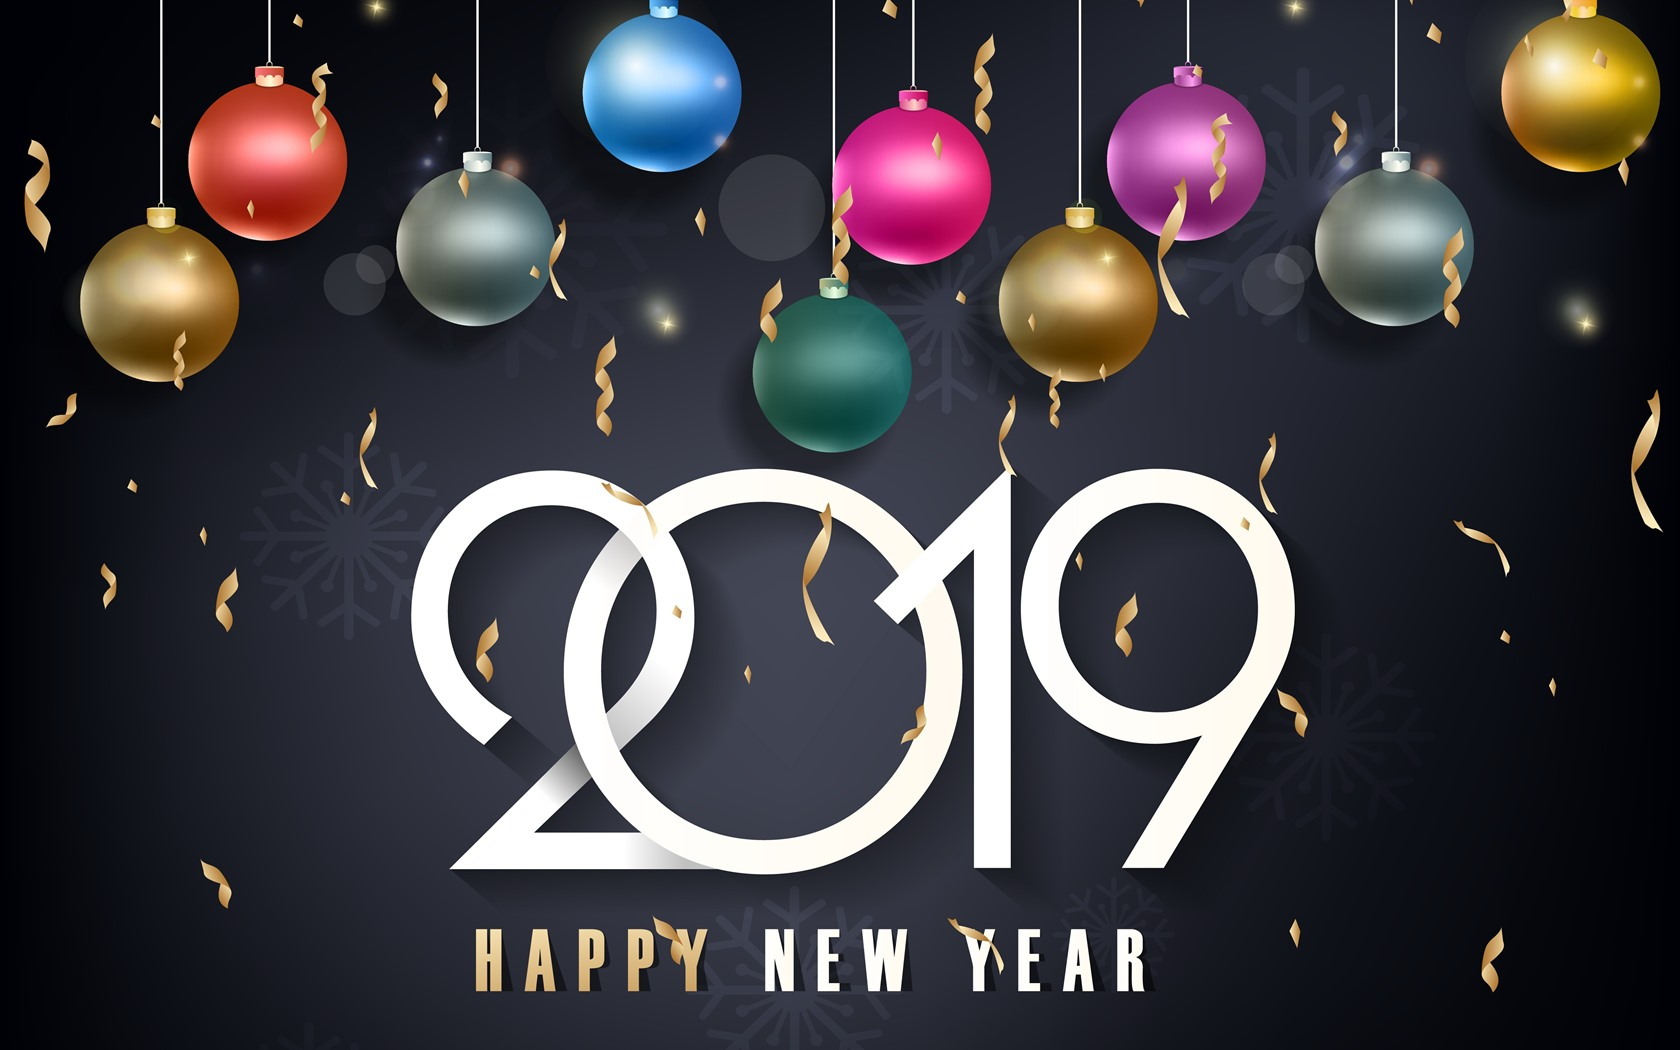 Wallpaper Happy New Year 2019, colorful Christmas balls 3840x2160